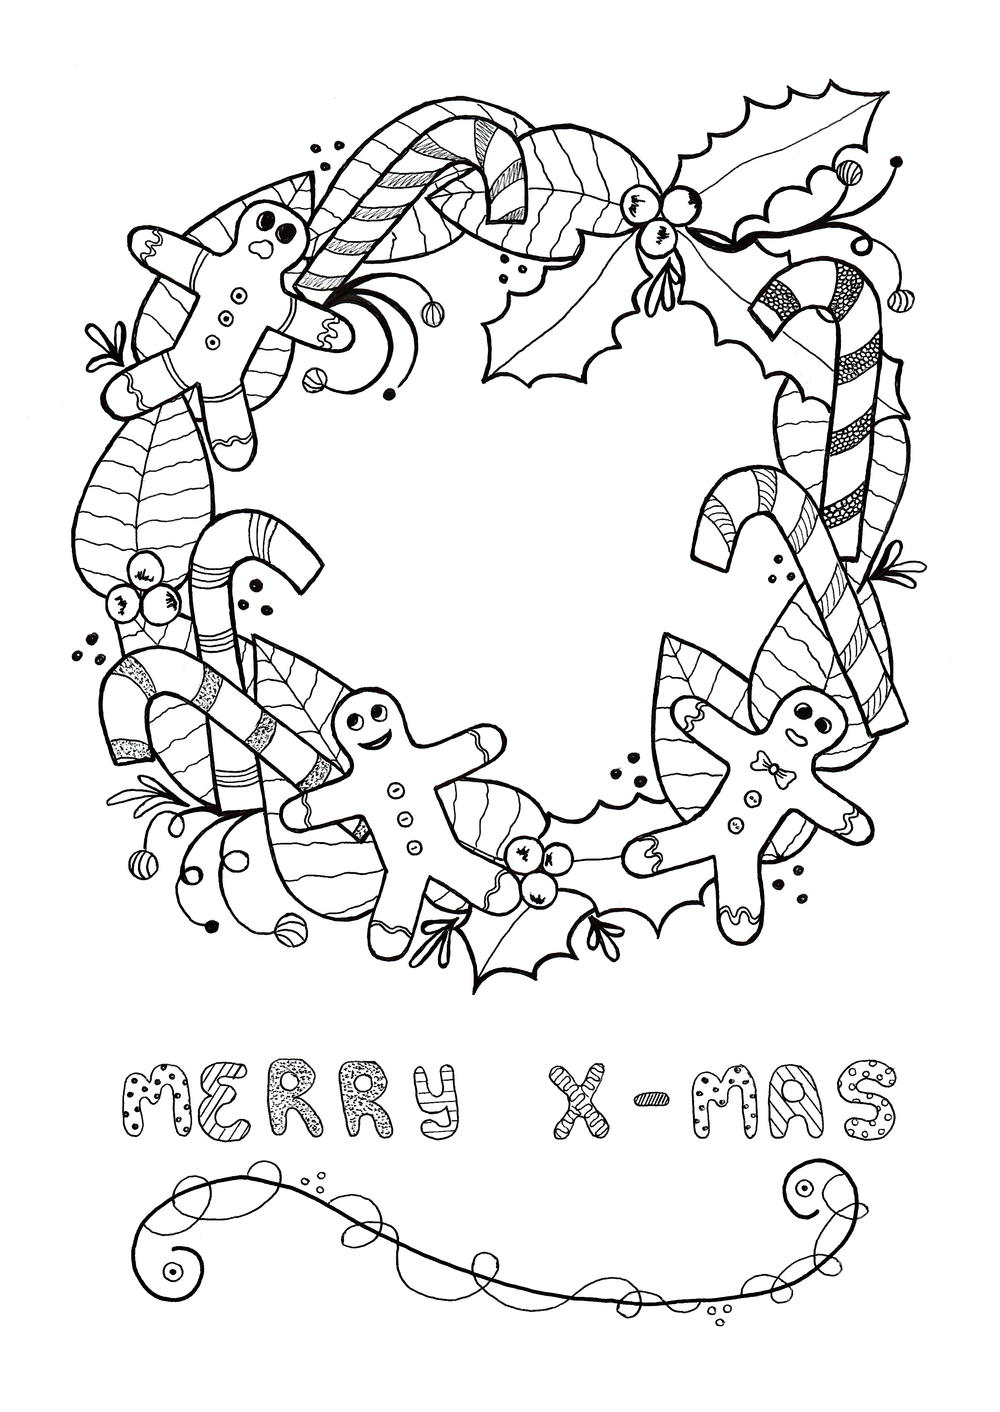 Festive Wreath Adult Christmas Coloring Page